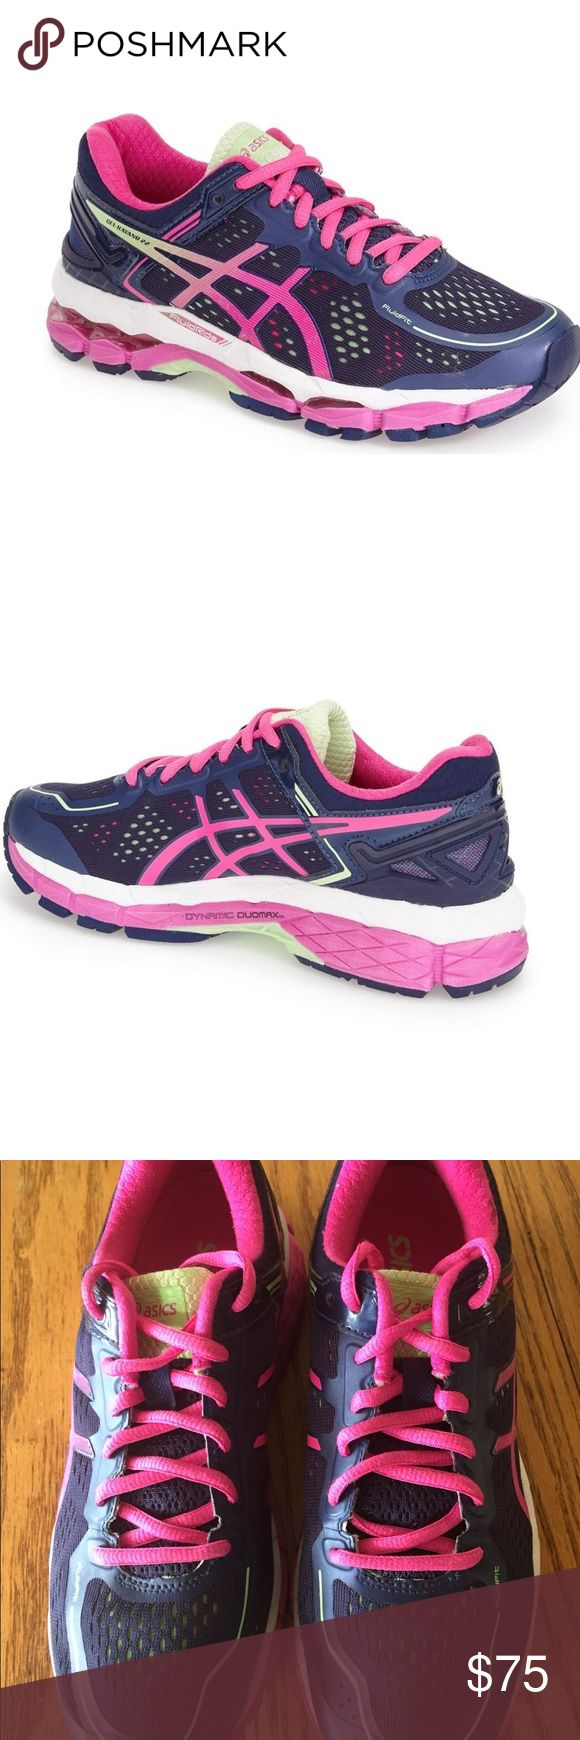 Asics Gel Kayano 21 Asics Gel Kayano 21 like brand new only worn a couple of times the insoles were never worn as I have my own custom insoles. The shoe features ample GEL cushioning,  Size 8 Narrow Asics Shoes Athletic Shoes